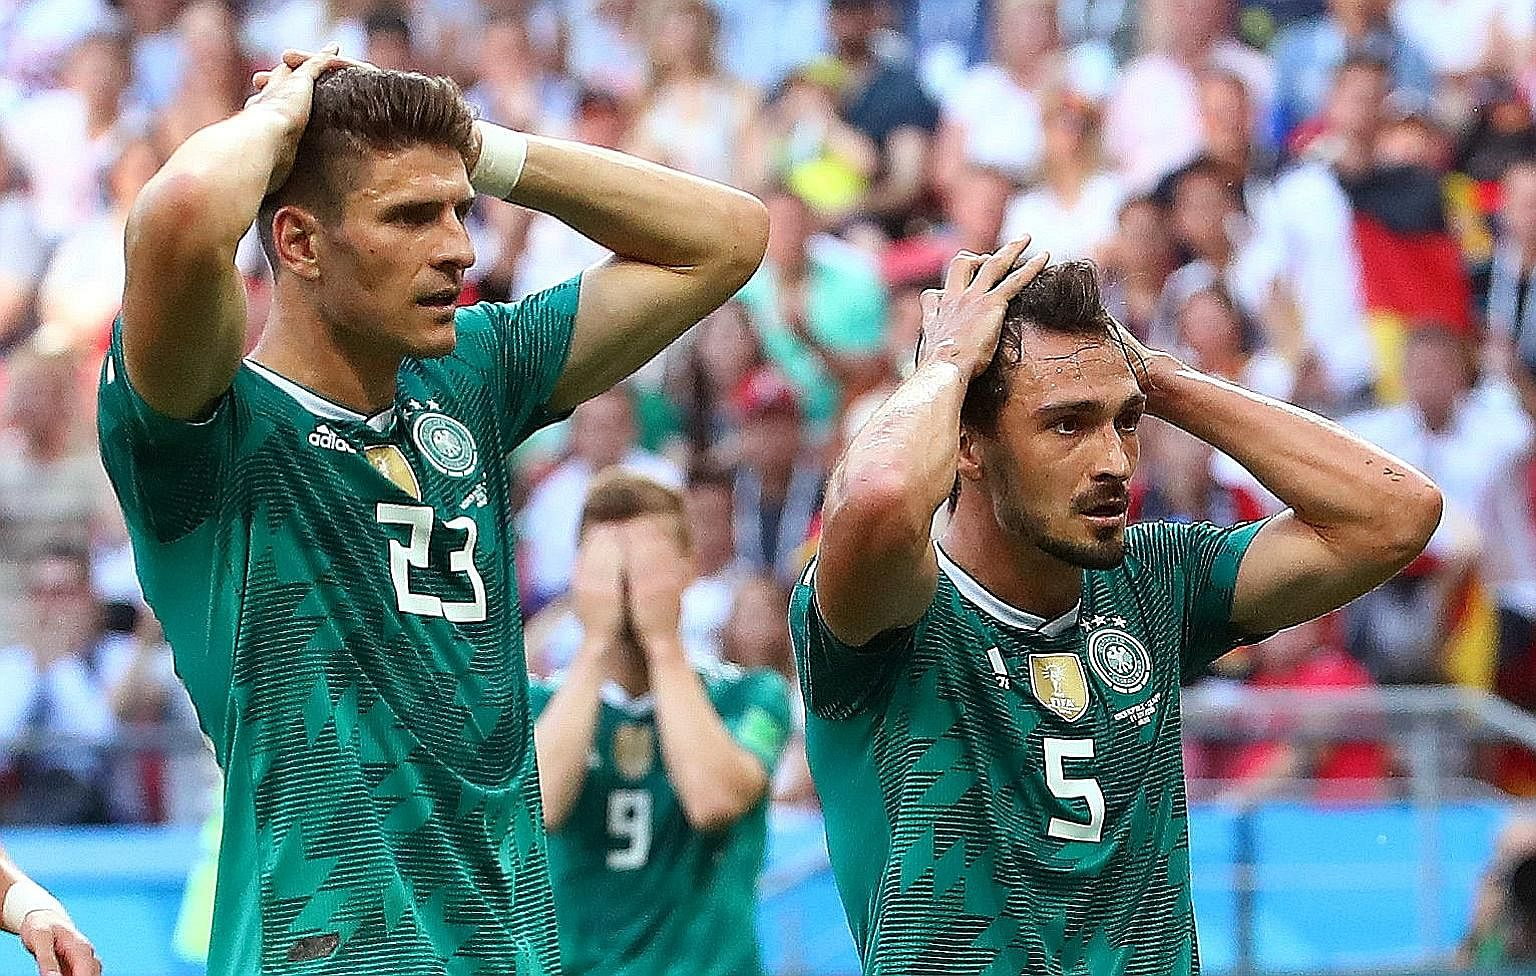 Defending champions Germany crashed out of the World Cup after a shock 0-2 Group F loss to South Korea yesterday. This is the first time the Germans have been eliminated in the first round since 1938. Sweden defeated Mexico 3-0 in the other match to